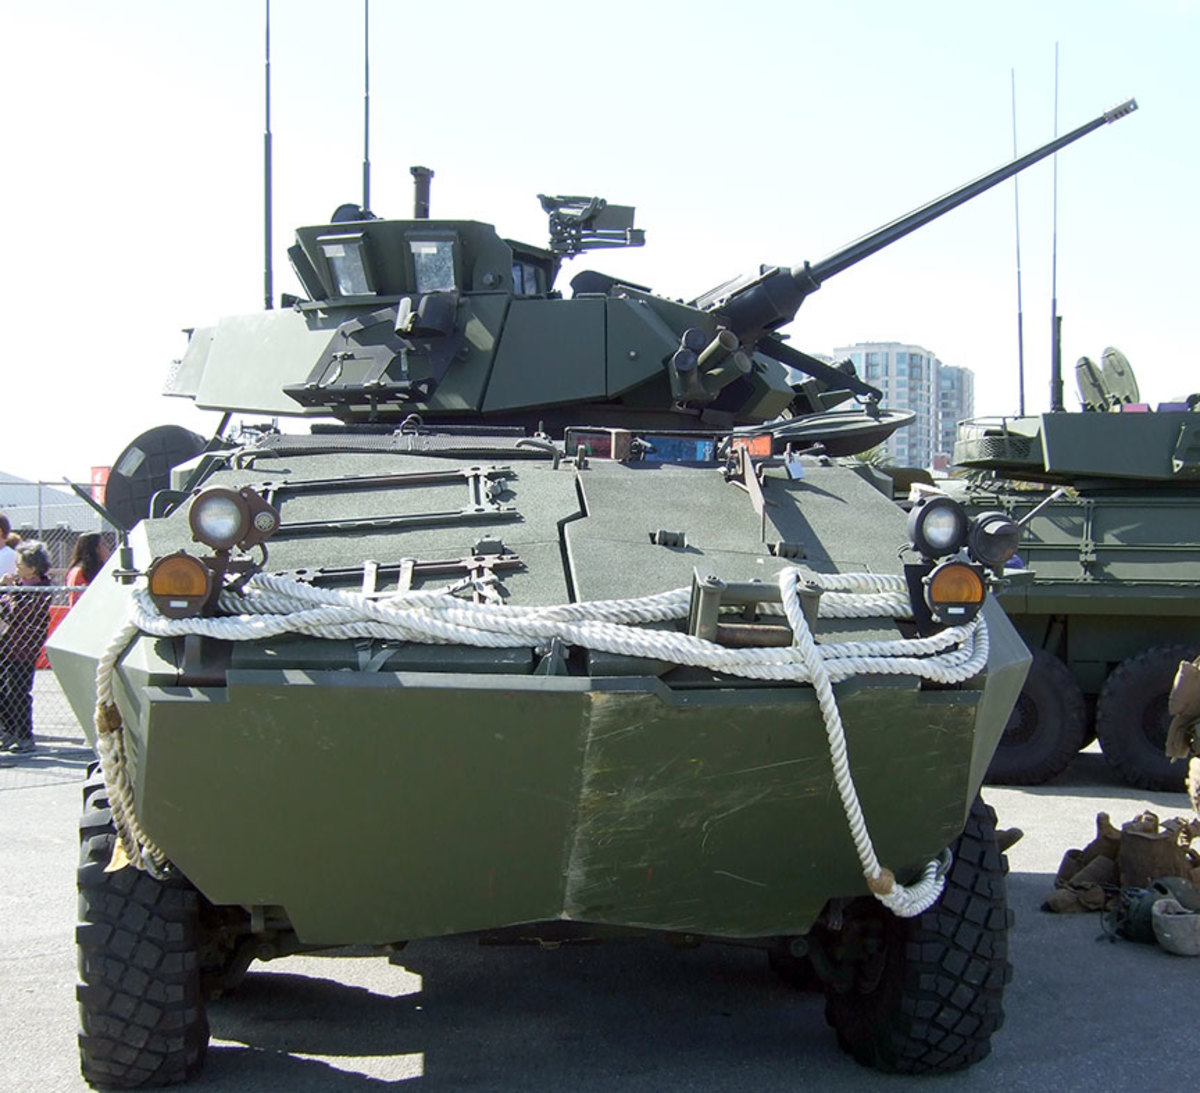 """Frontal view of LAVA2.  Note the """"glass armor"""" blast shield panels on the turret roof to protect the crewmember when standing in the hatch or firing the turret-mounted M240 medium machine gun."""